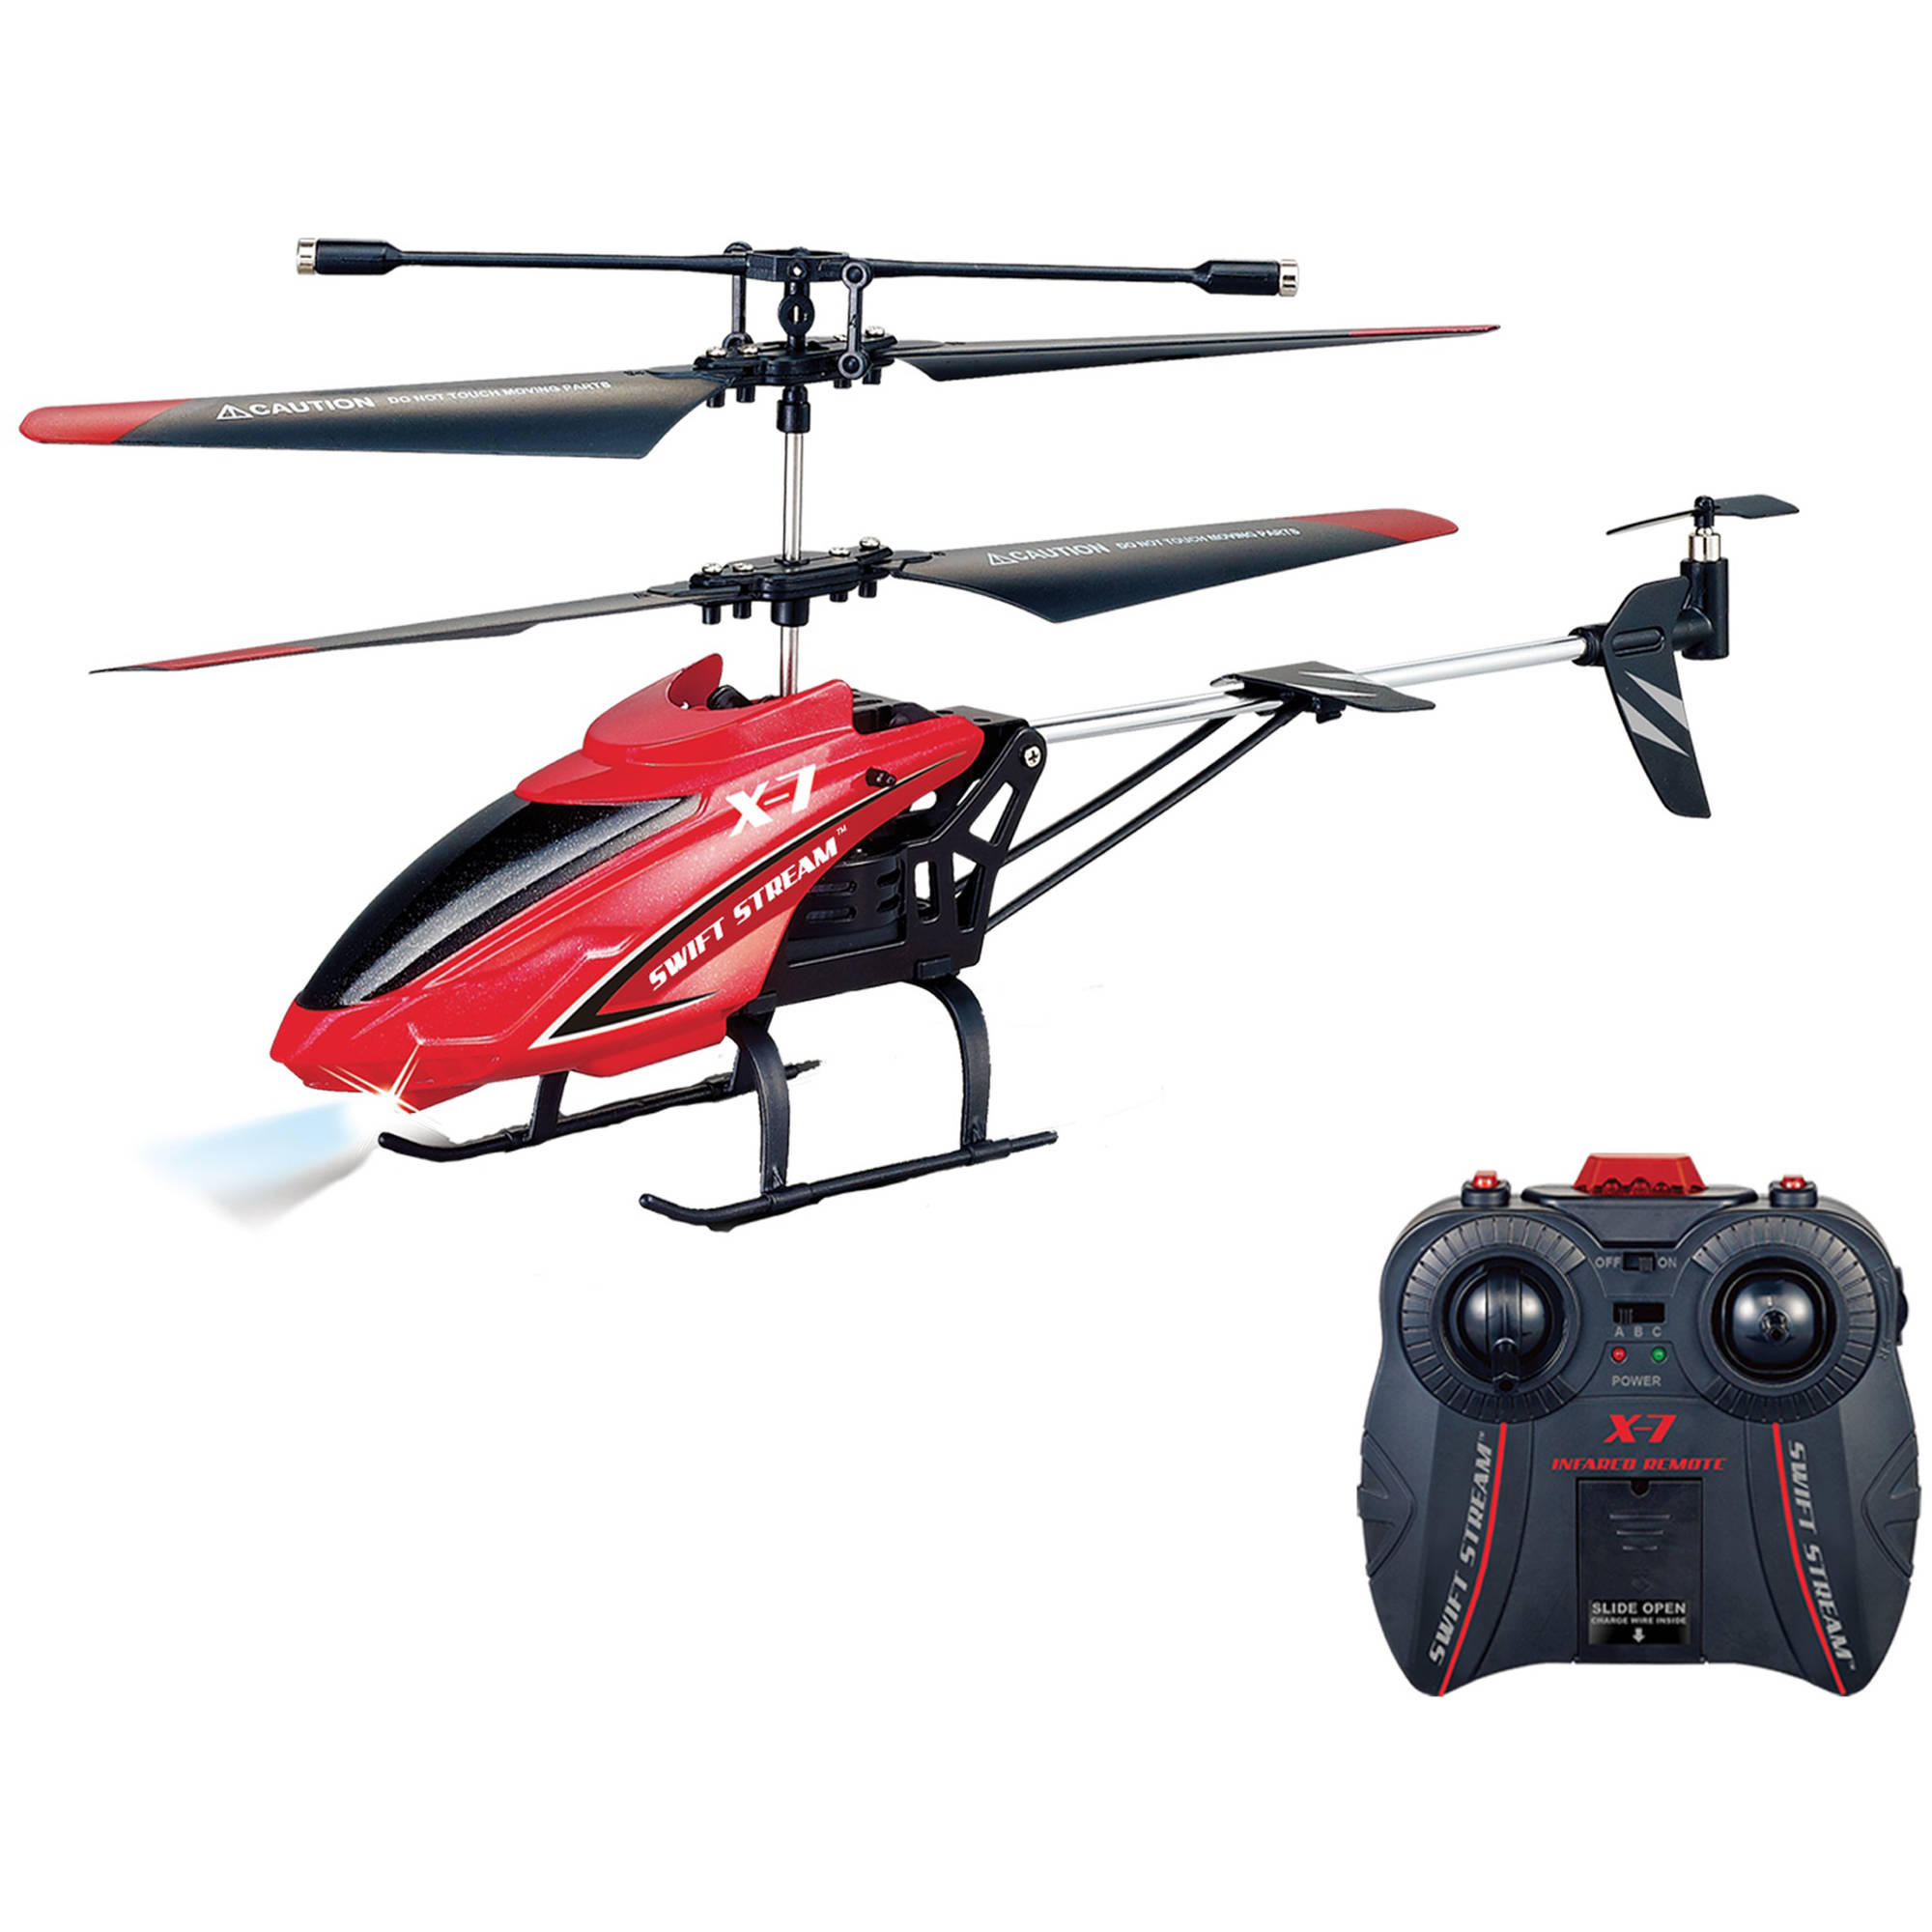 Walmart Rc Toys For Boys : The best of helicopter toys for toddlers pics children